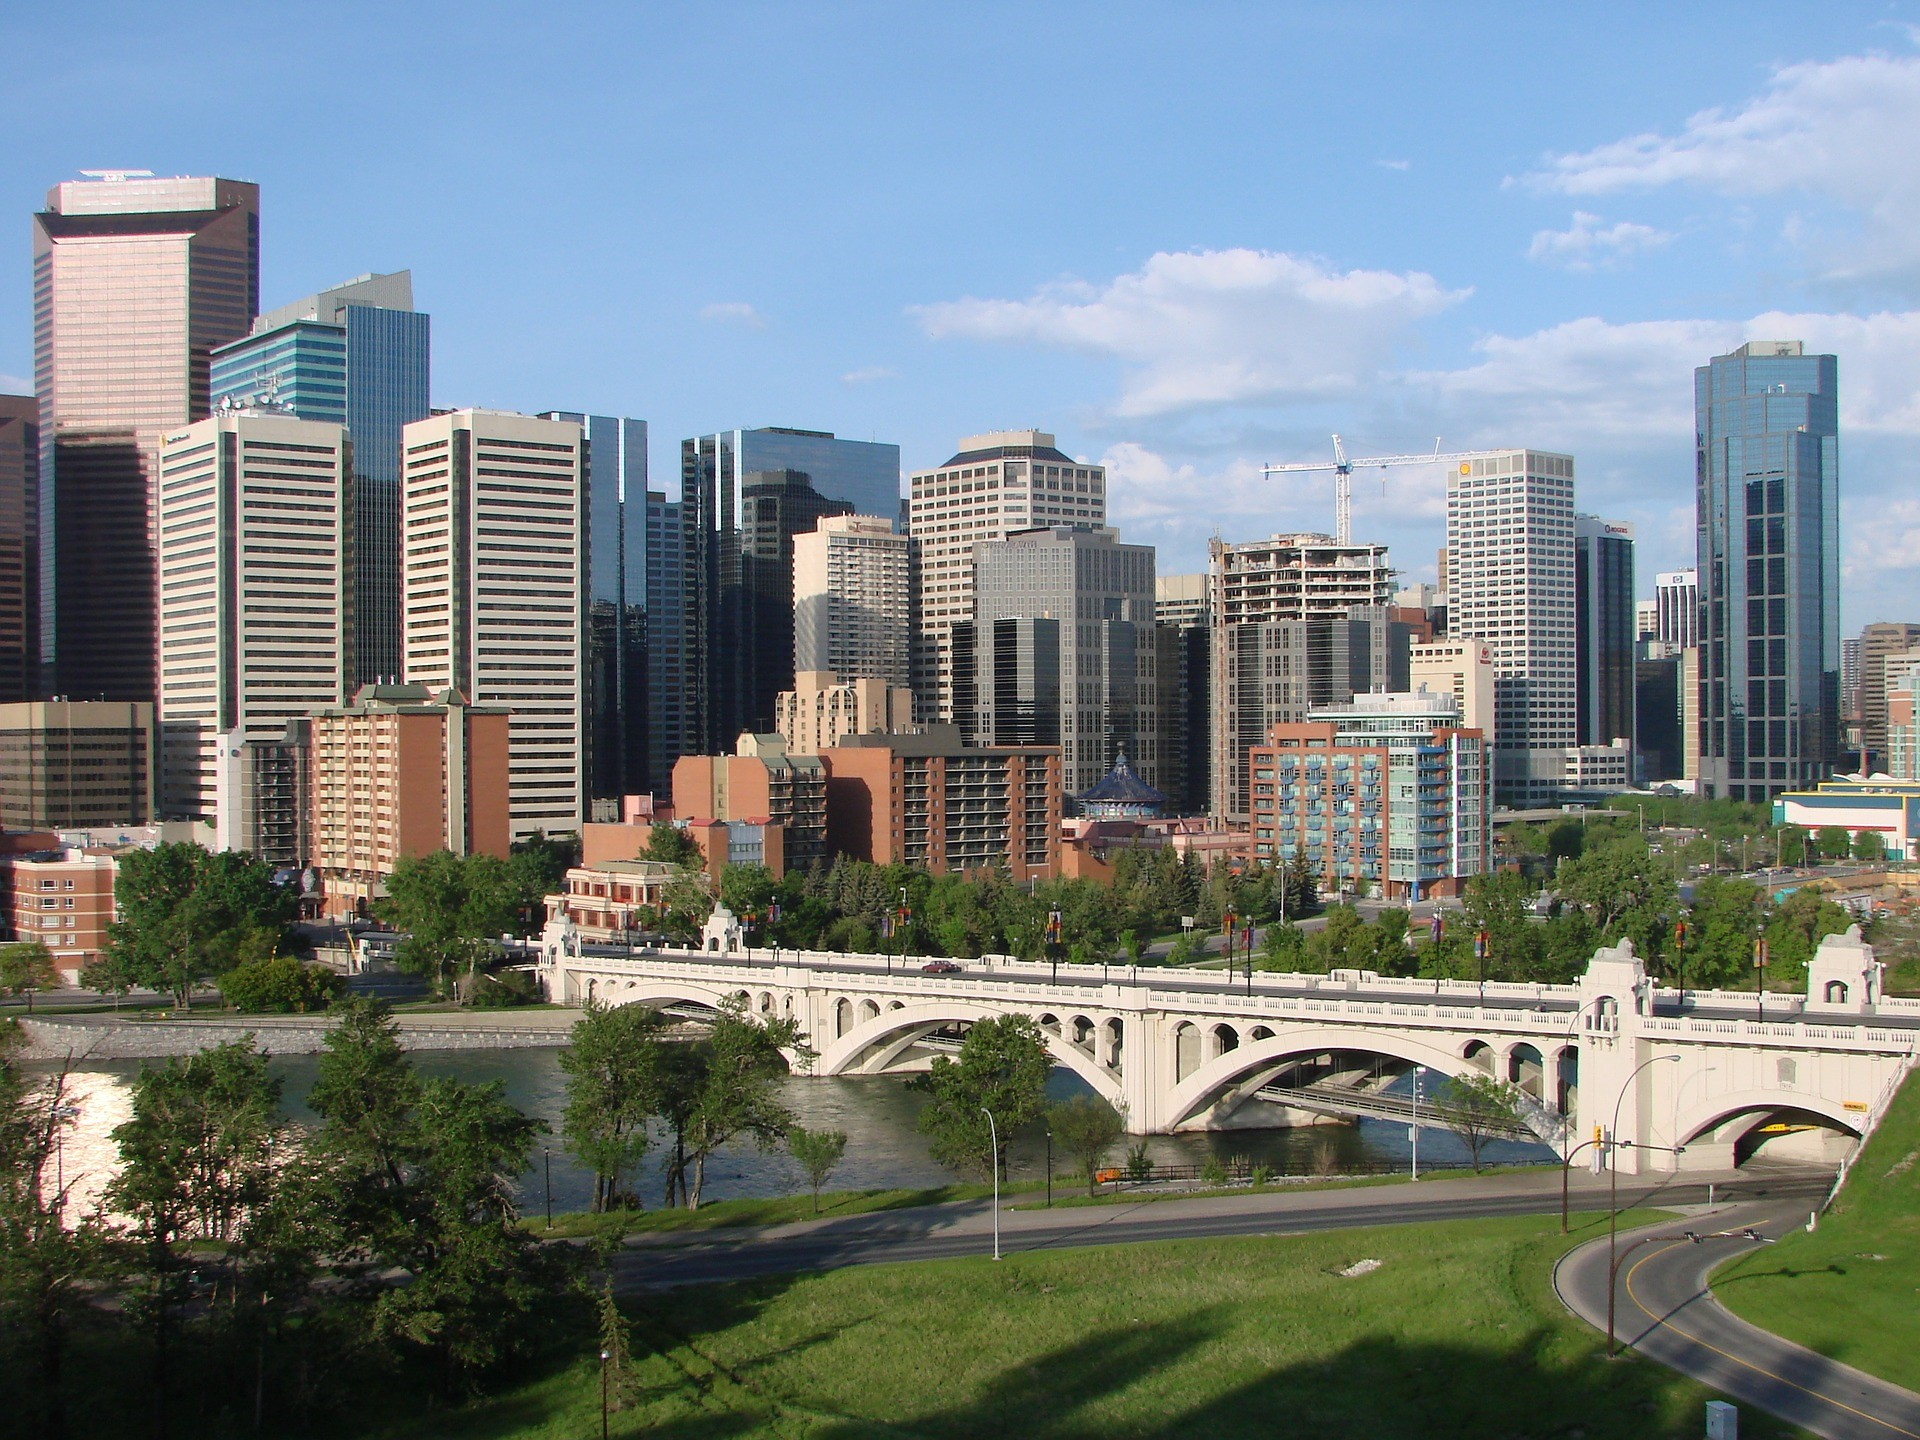 a daytime view of the Calgary, Alberta skyline and a pedestrian bridge over the Bow River